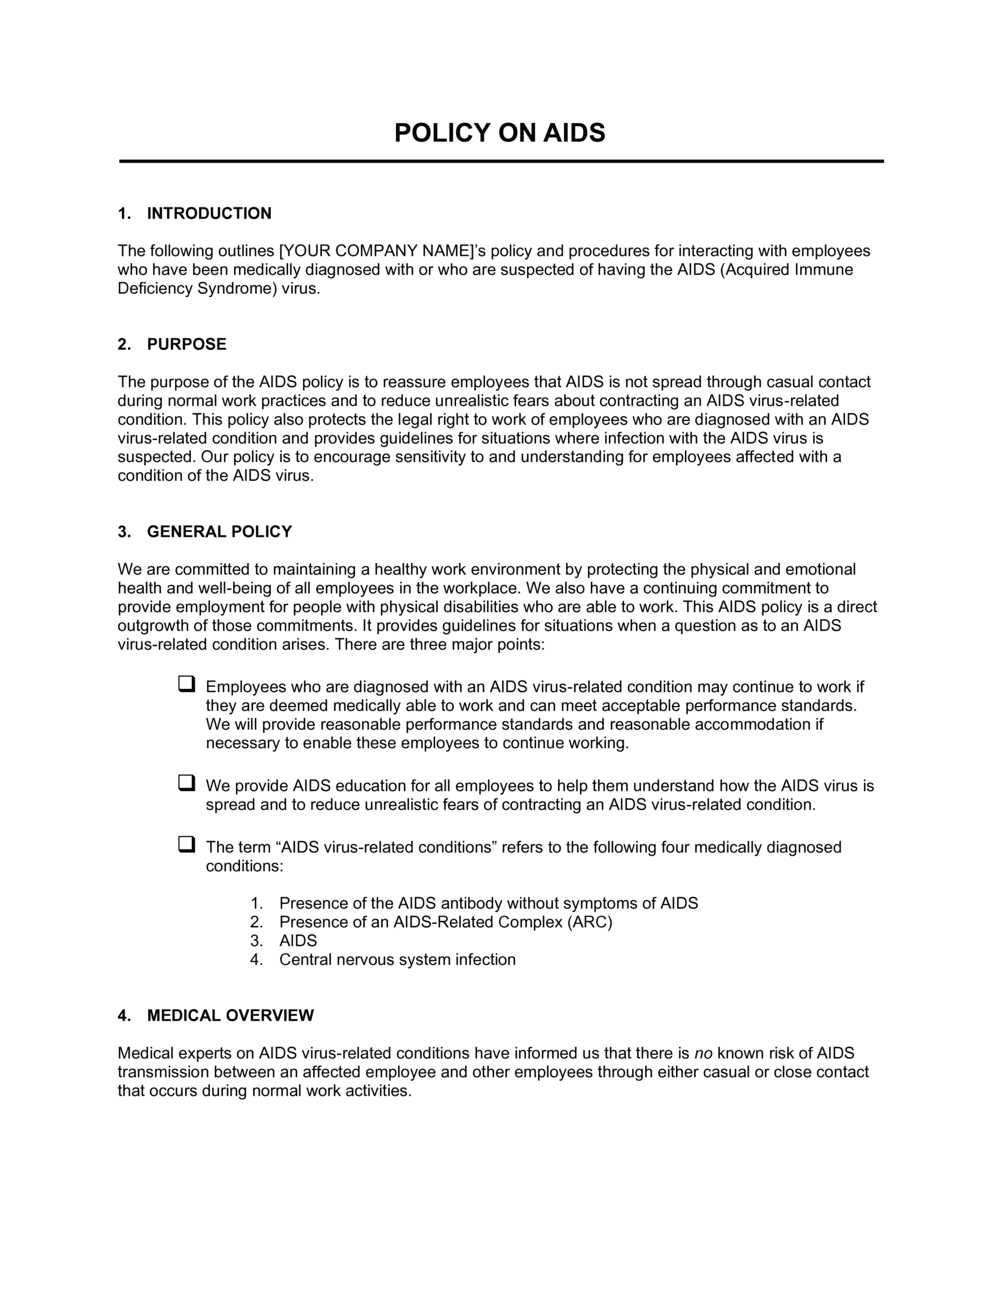 Business-in-a-Box's Workplace AIDS Policy Template